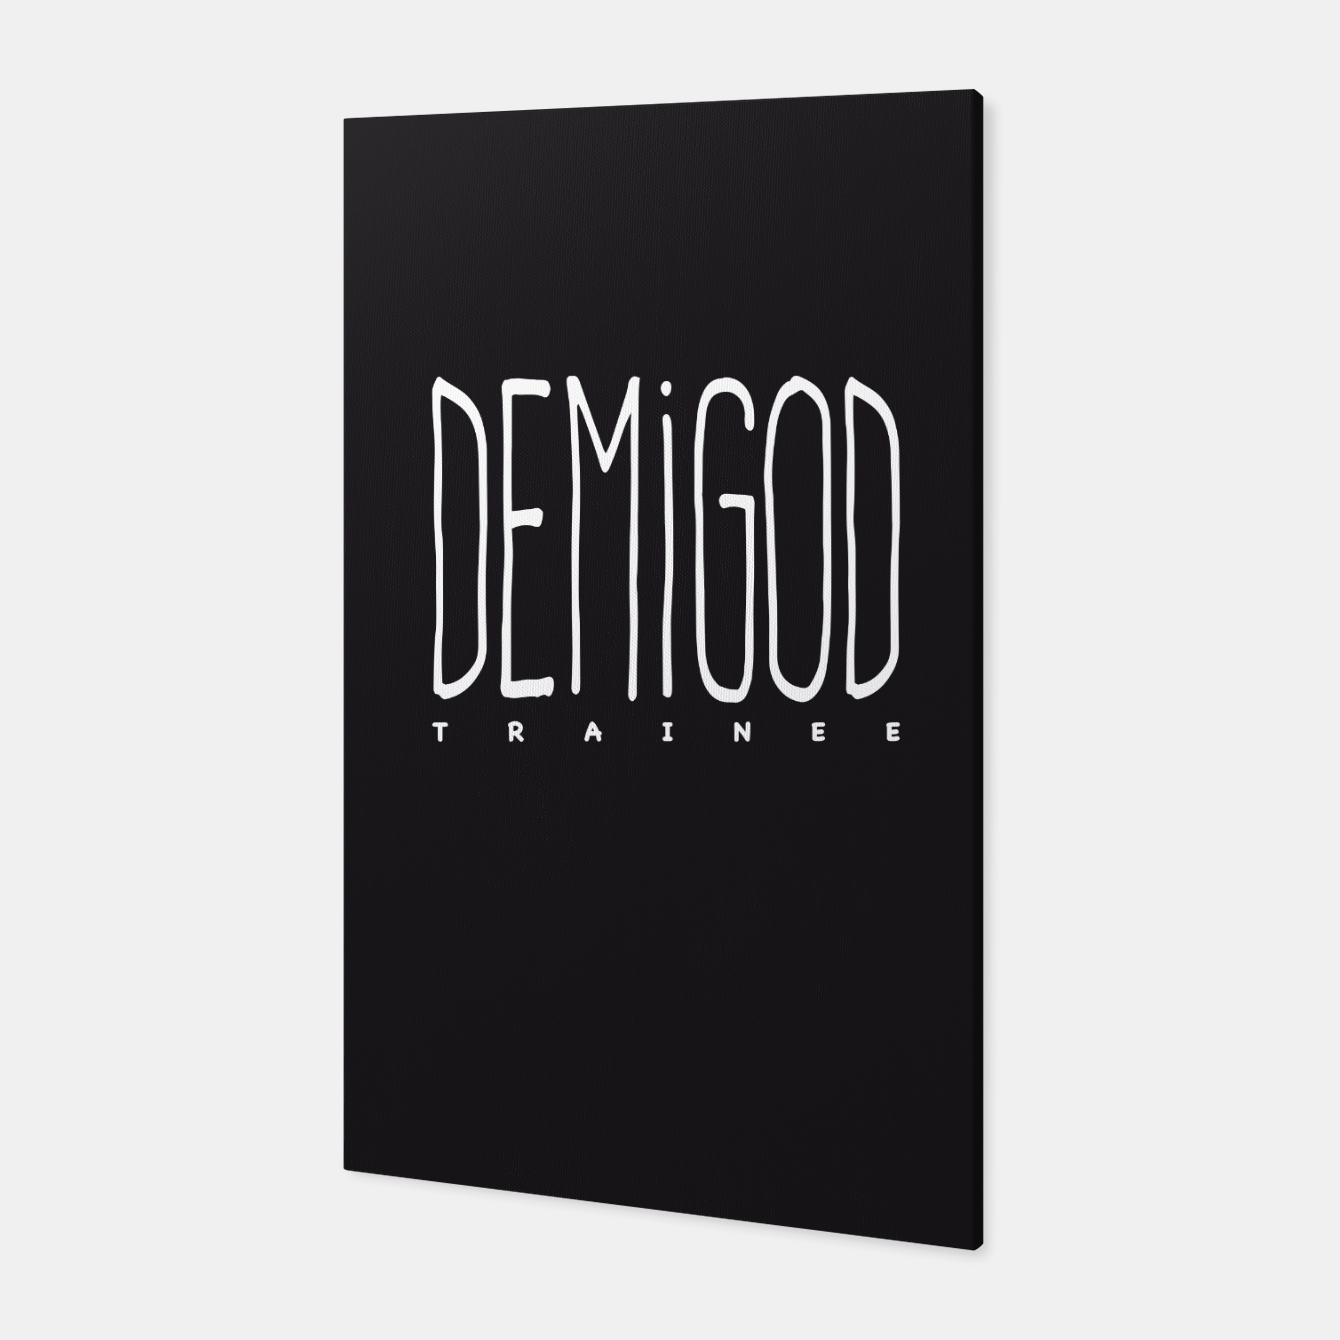 Zdjęcie Demigod Trainee (White on Black) Canvas - Live Heroes